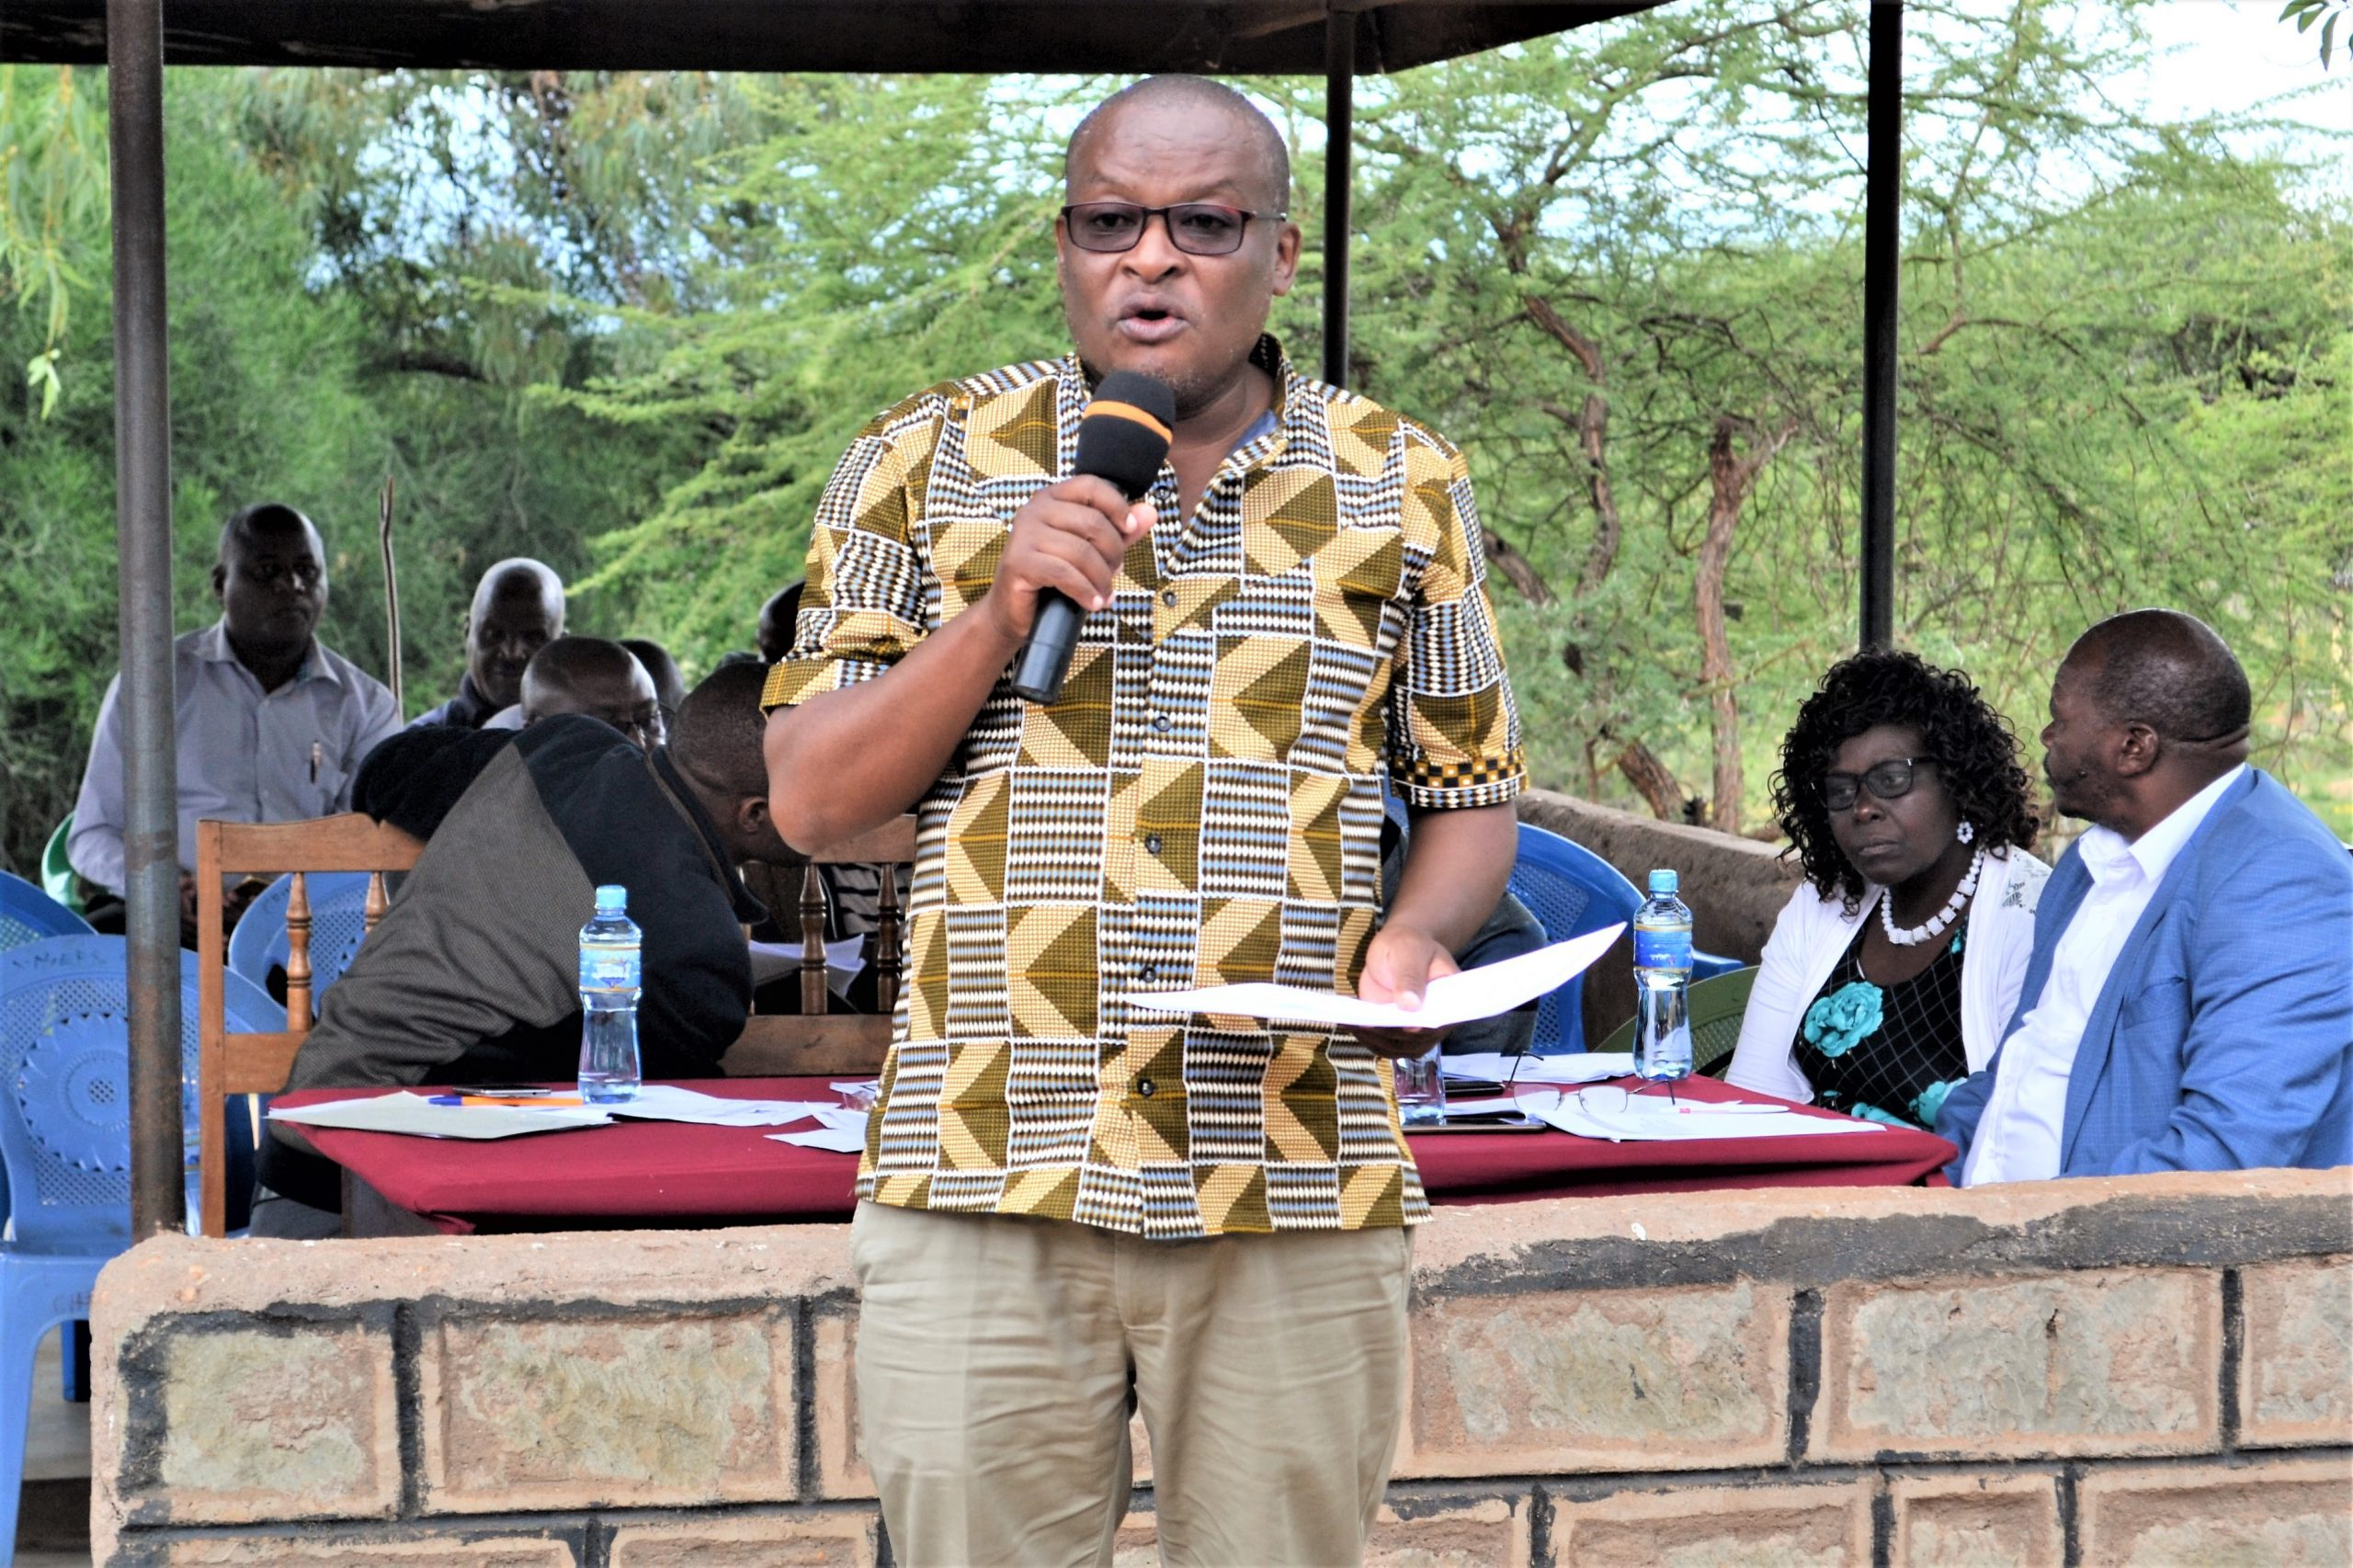 /Budget-and-Appropriations-Committee-Chairman-Harrison-Mwaluko-Mwea-MCA-explaining-the-2019-2020-Budget-to-Makima-Residents-during-a-Public-Participation-forum.